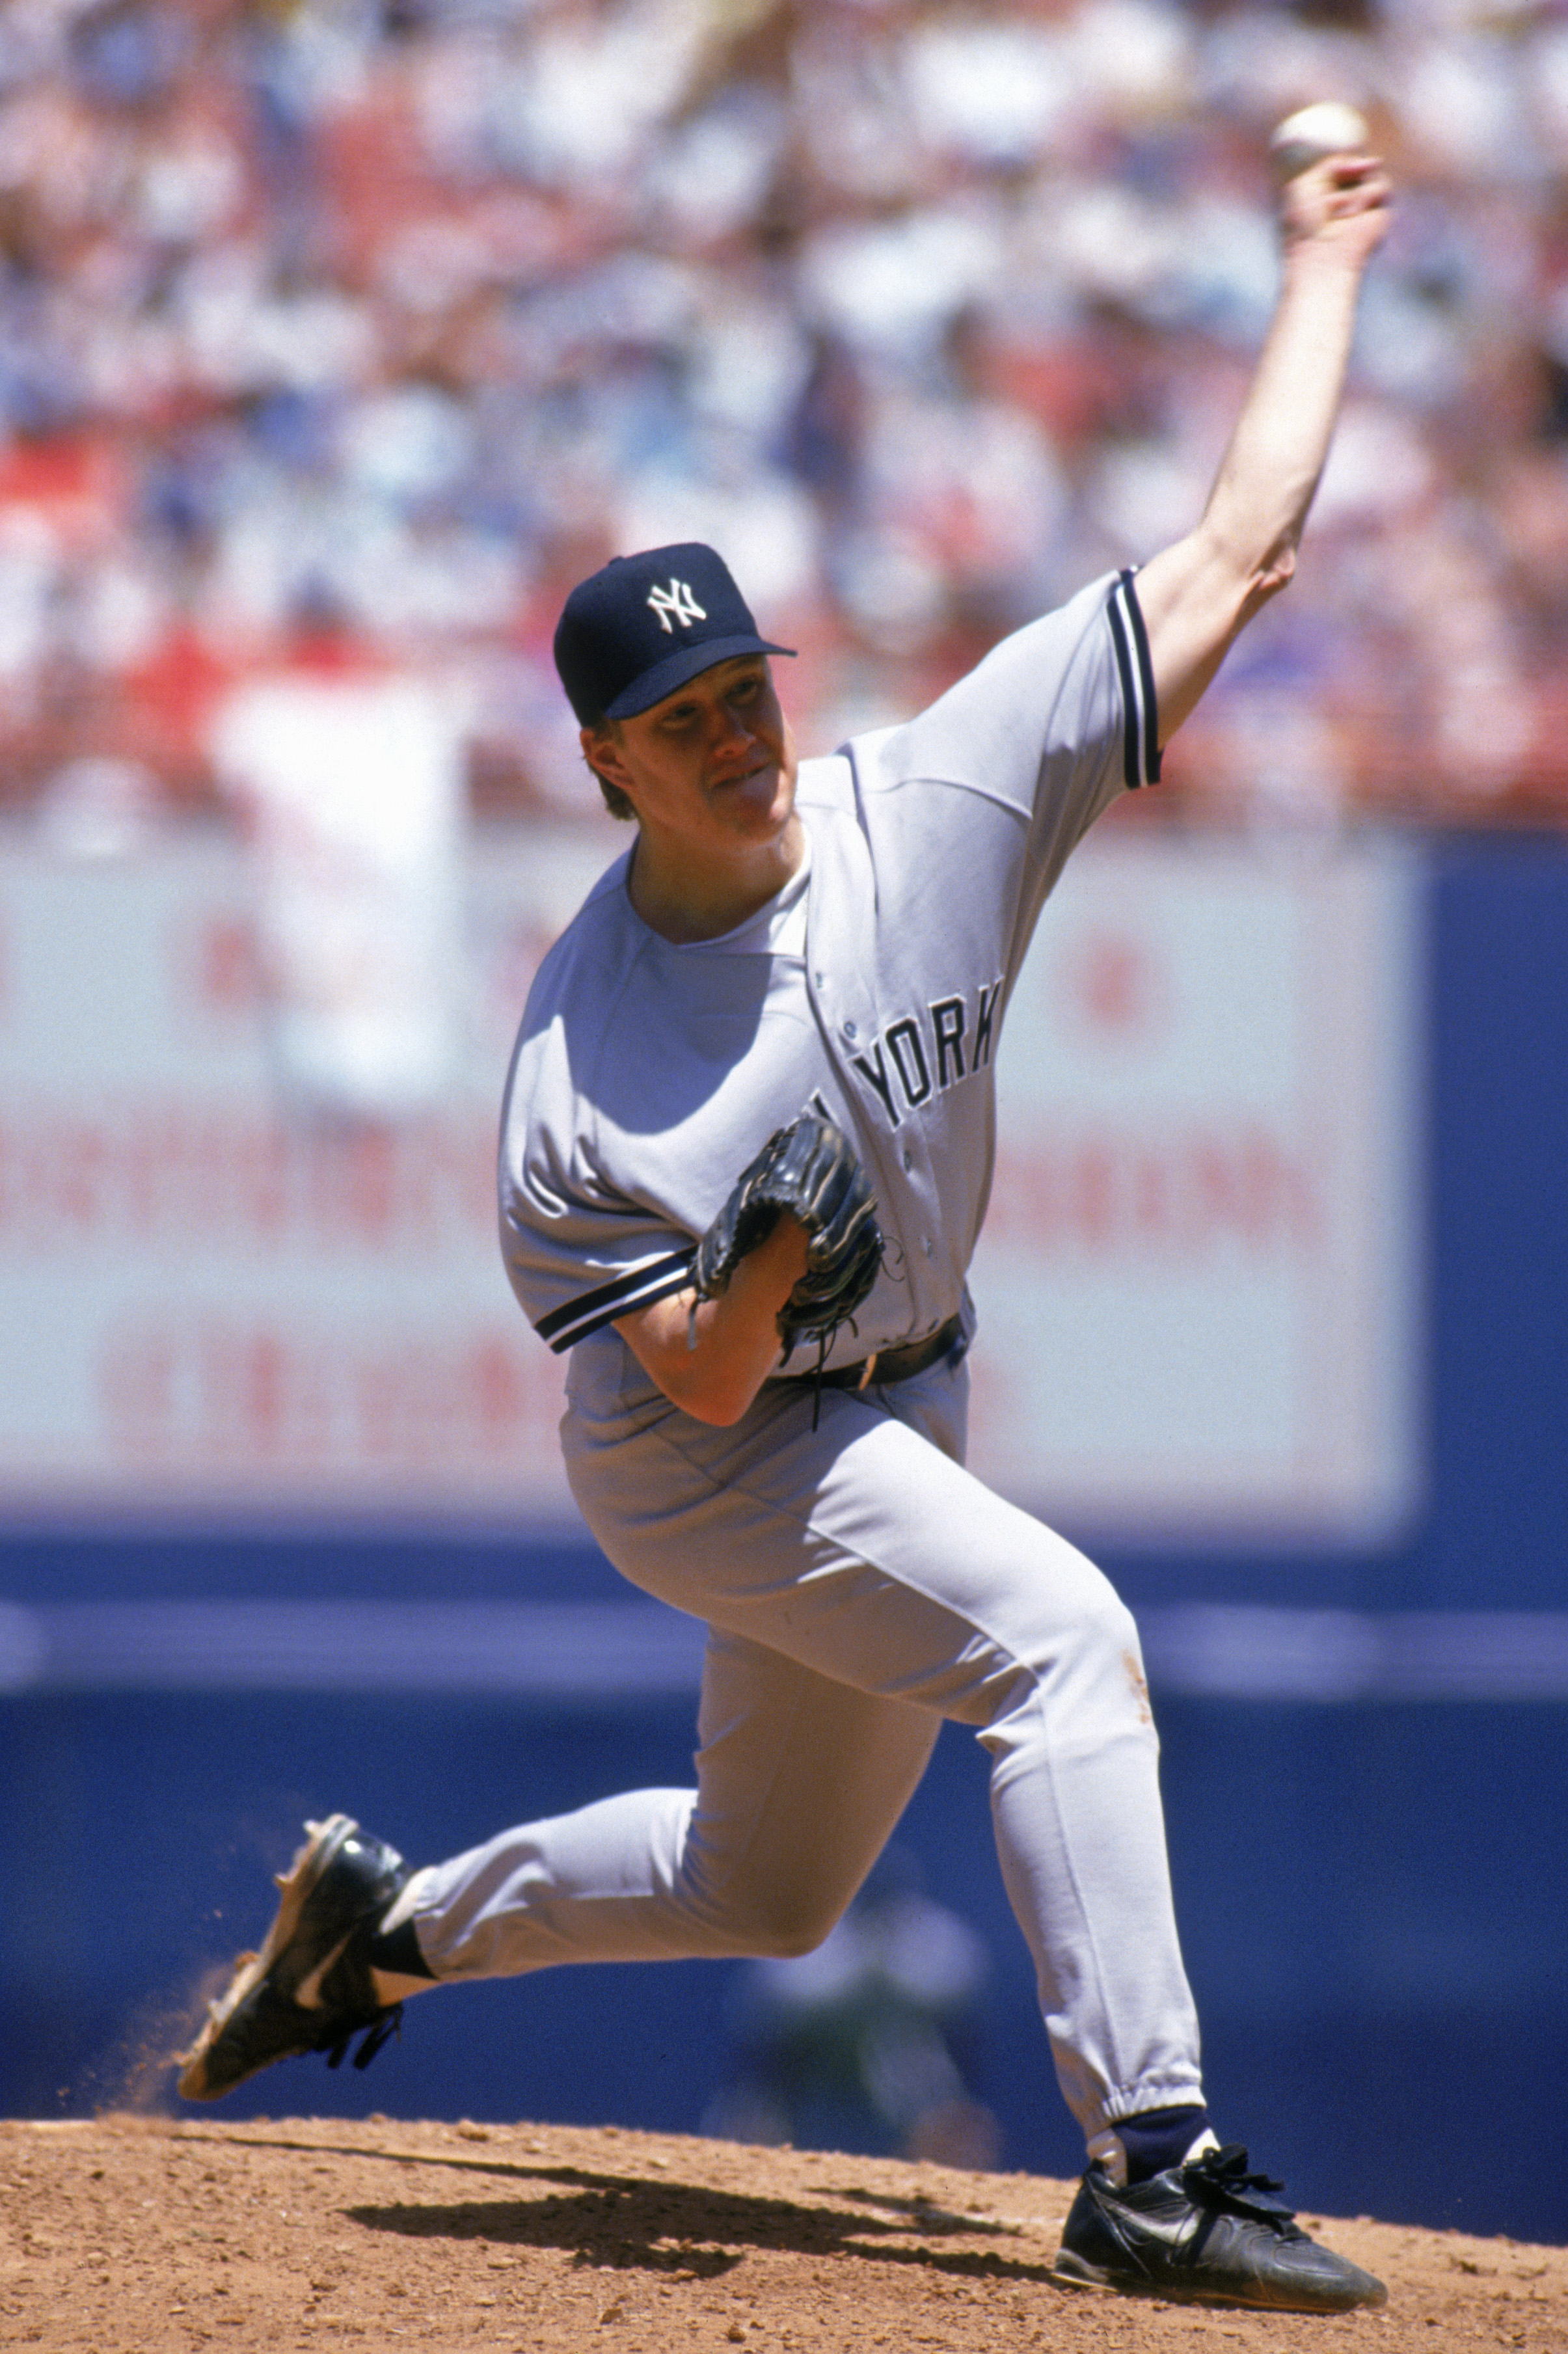 ANAHEIM, CA - JULY 11:  Jim Abbott #25 of the New York Yankees delivers a pitch during a game against the California Angels at Anaheim Stadium on July 11, 1993 in Anaheim, California.  (Photo by Jonathan Daniel/Getty Images)